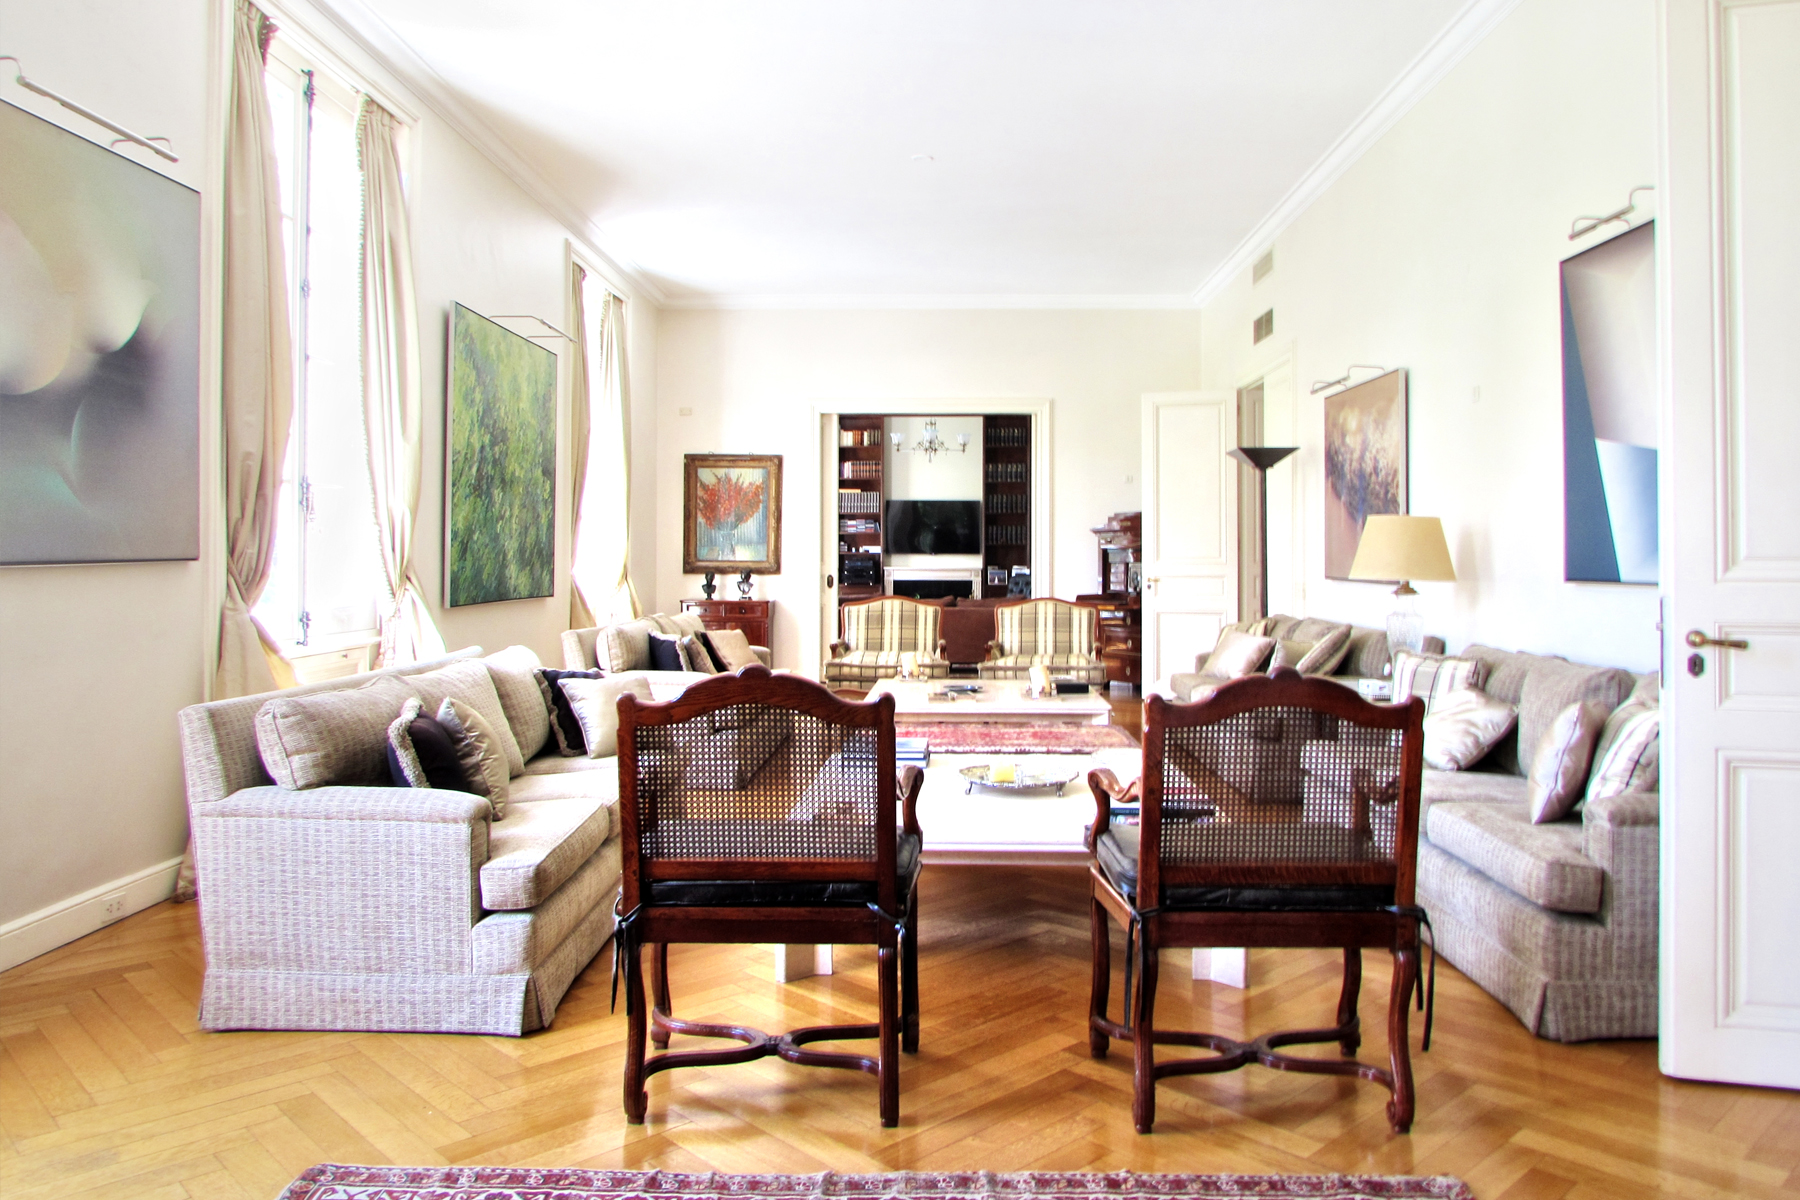 sales property at French Style Apartment in Recoleta - Posadas 1600